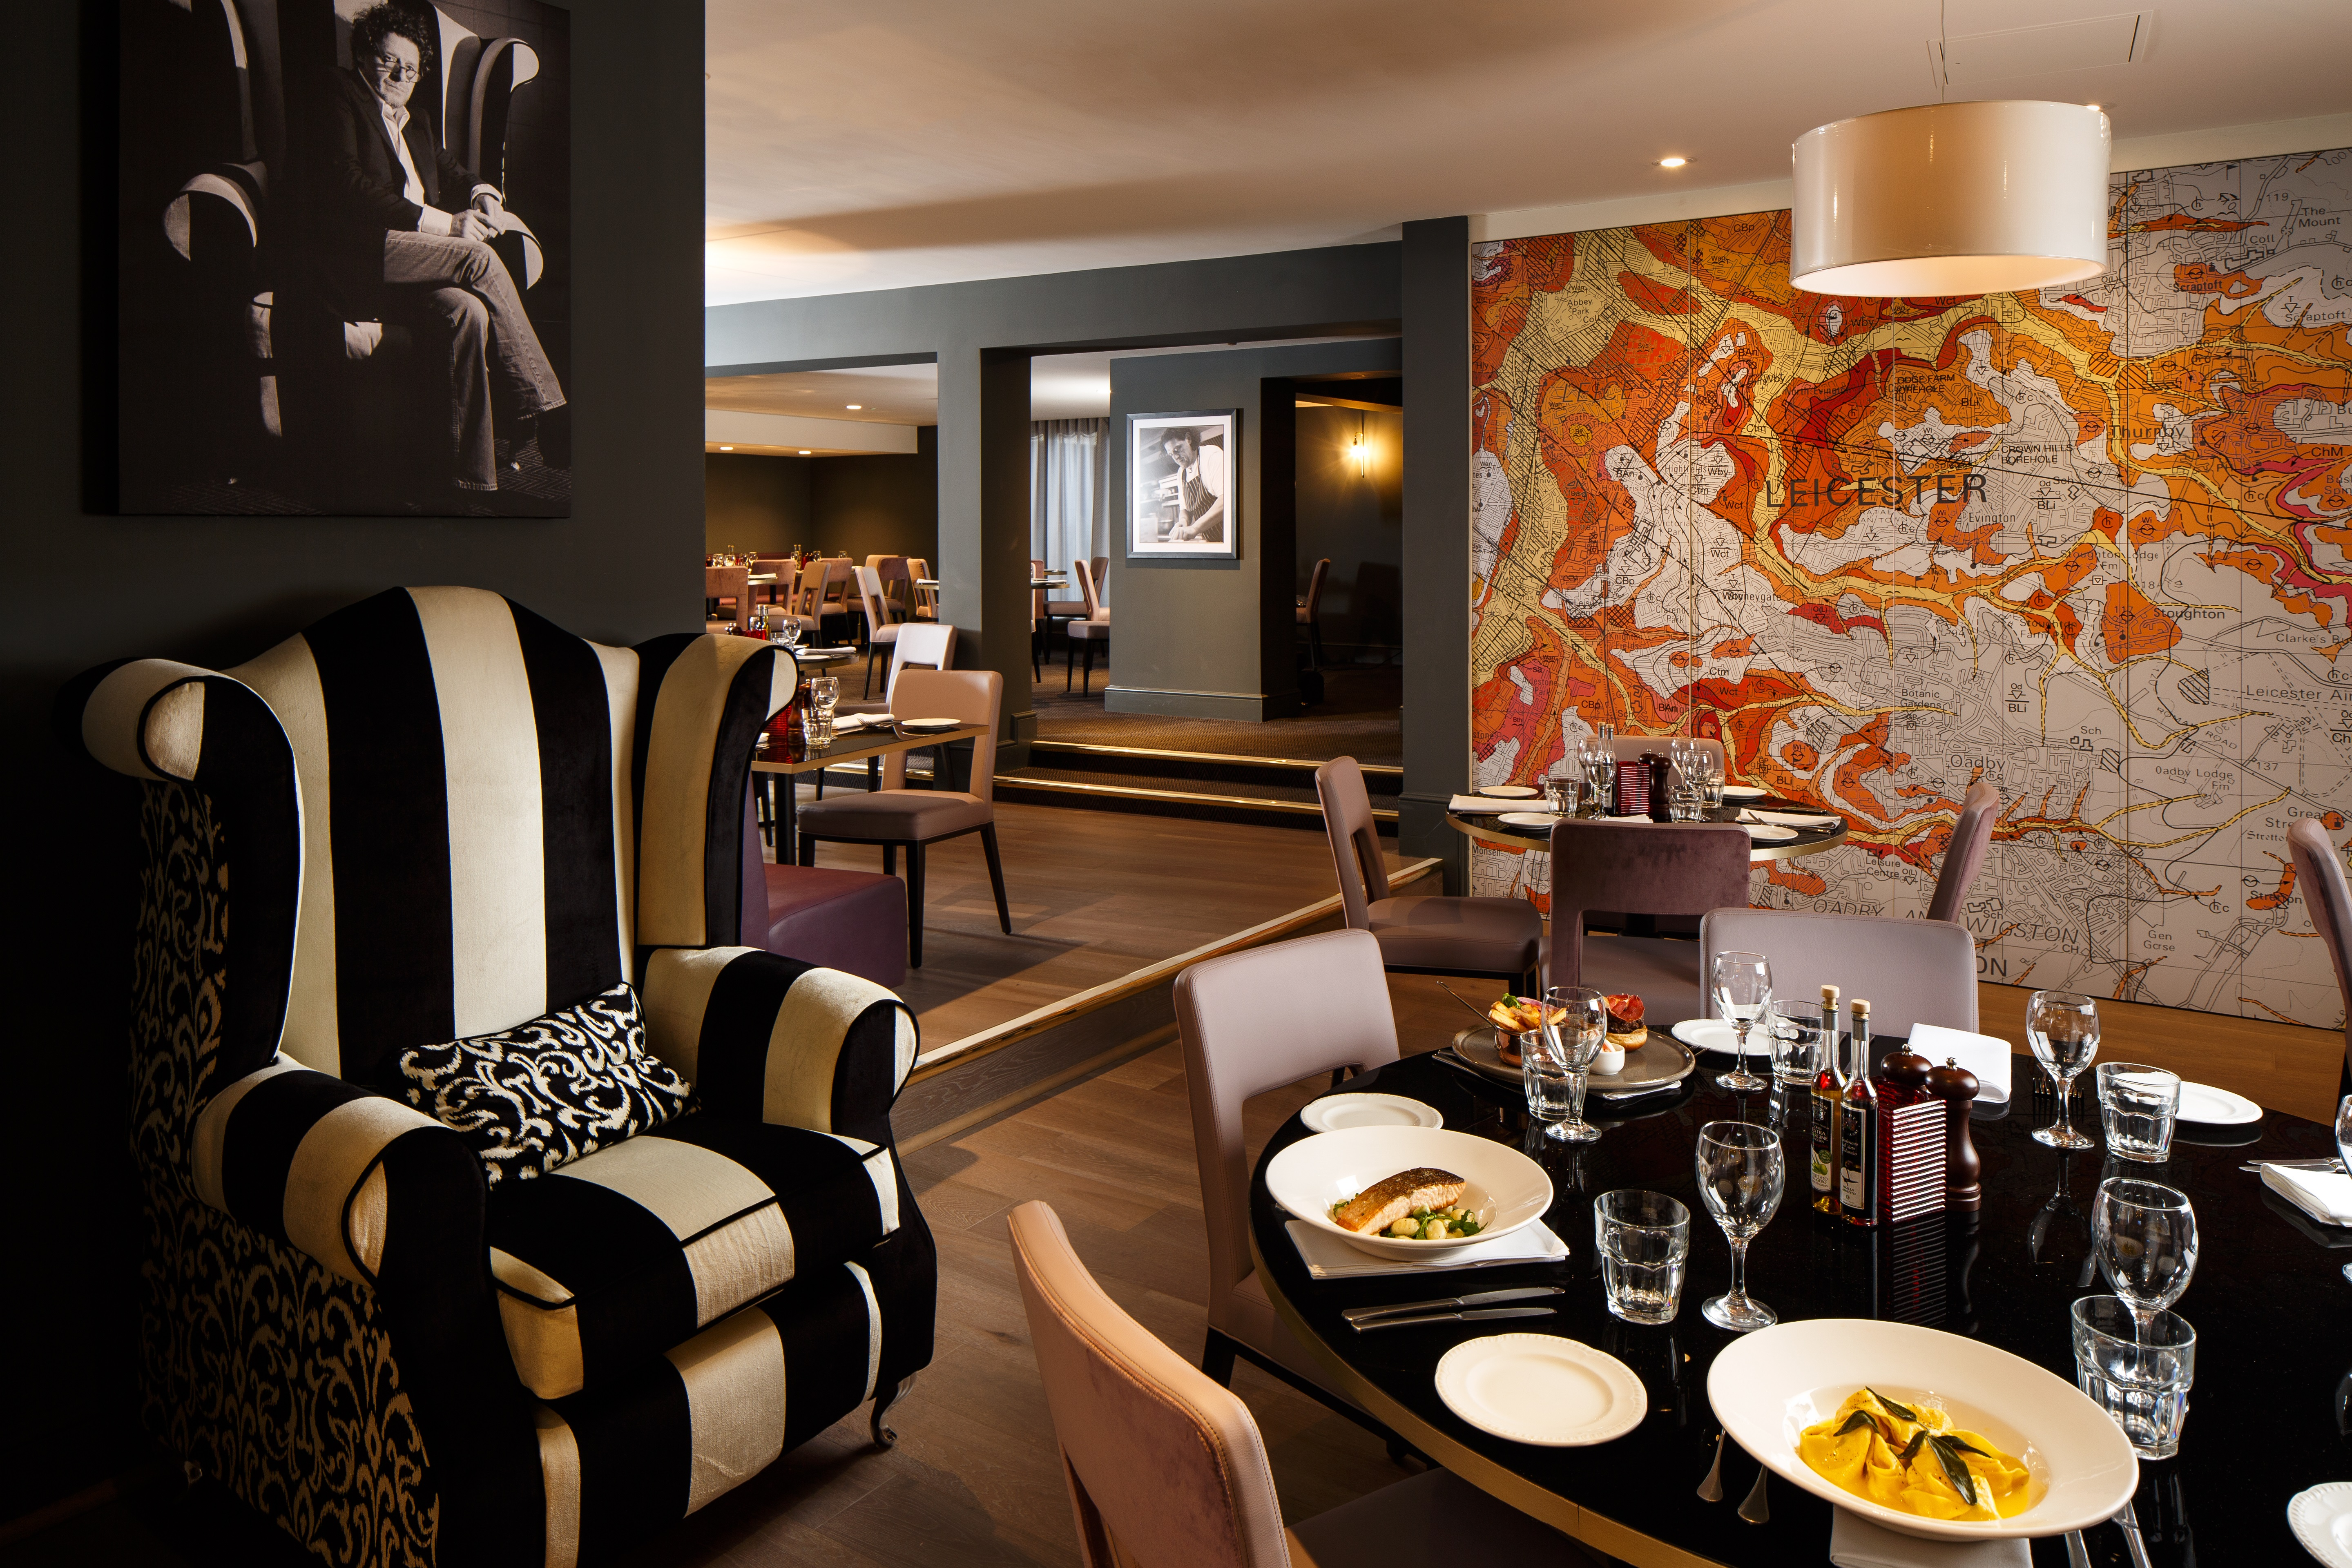 Marco's New York Italian by Marco Pierre White, Leicester - Leicester